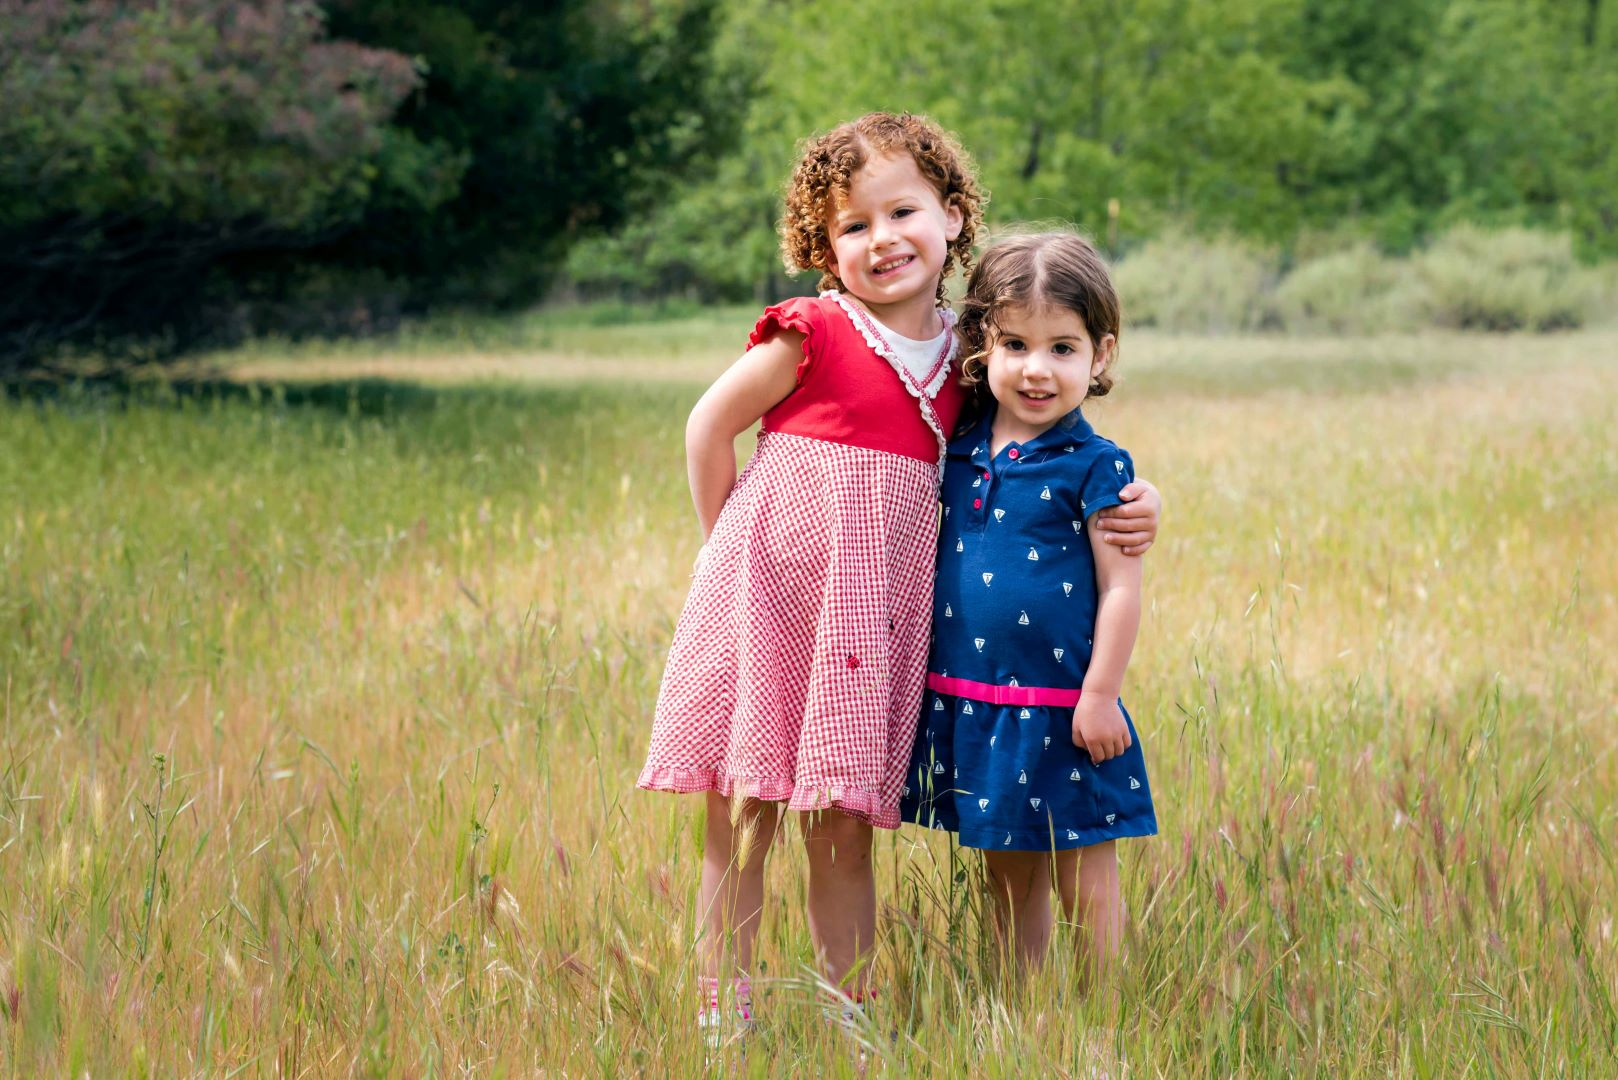 neilson family photography cupertino bay area mcclellan ranch sisters